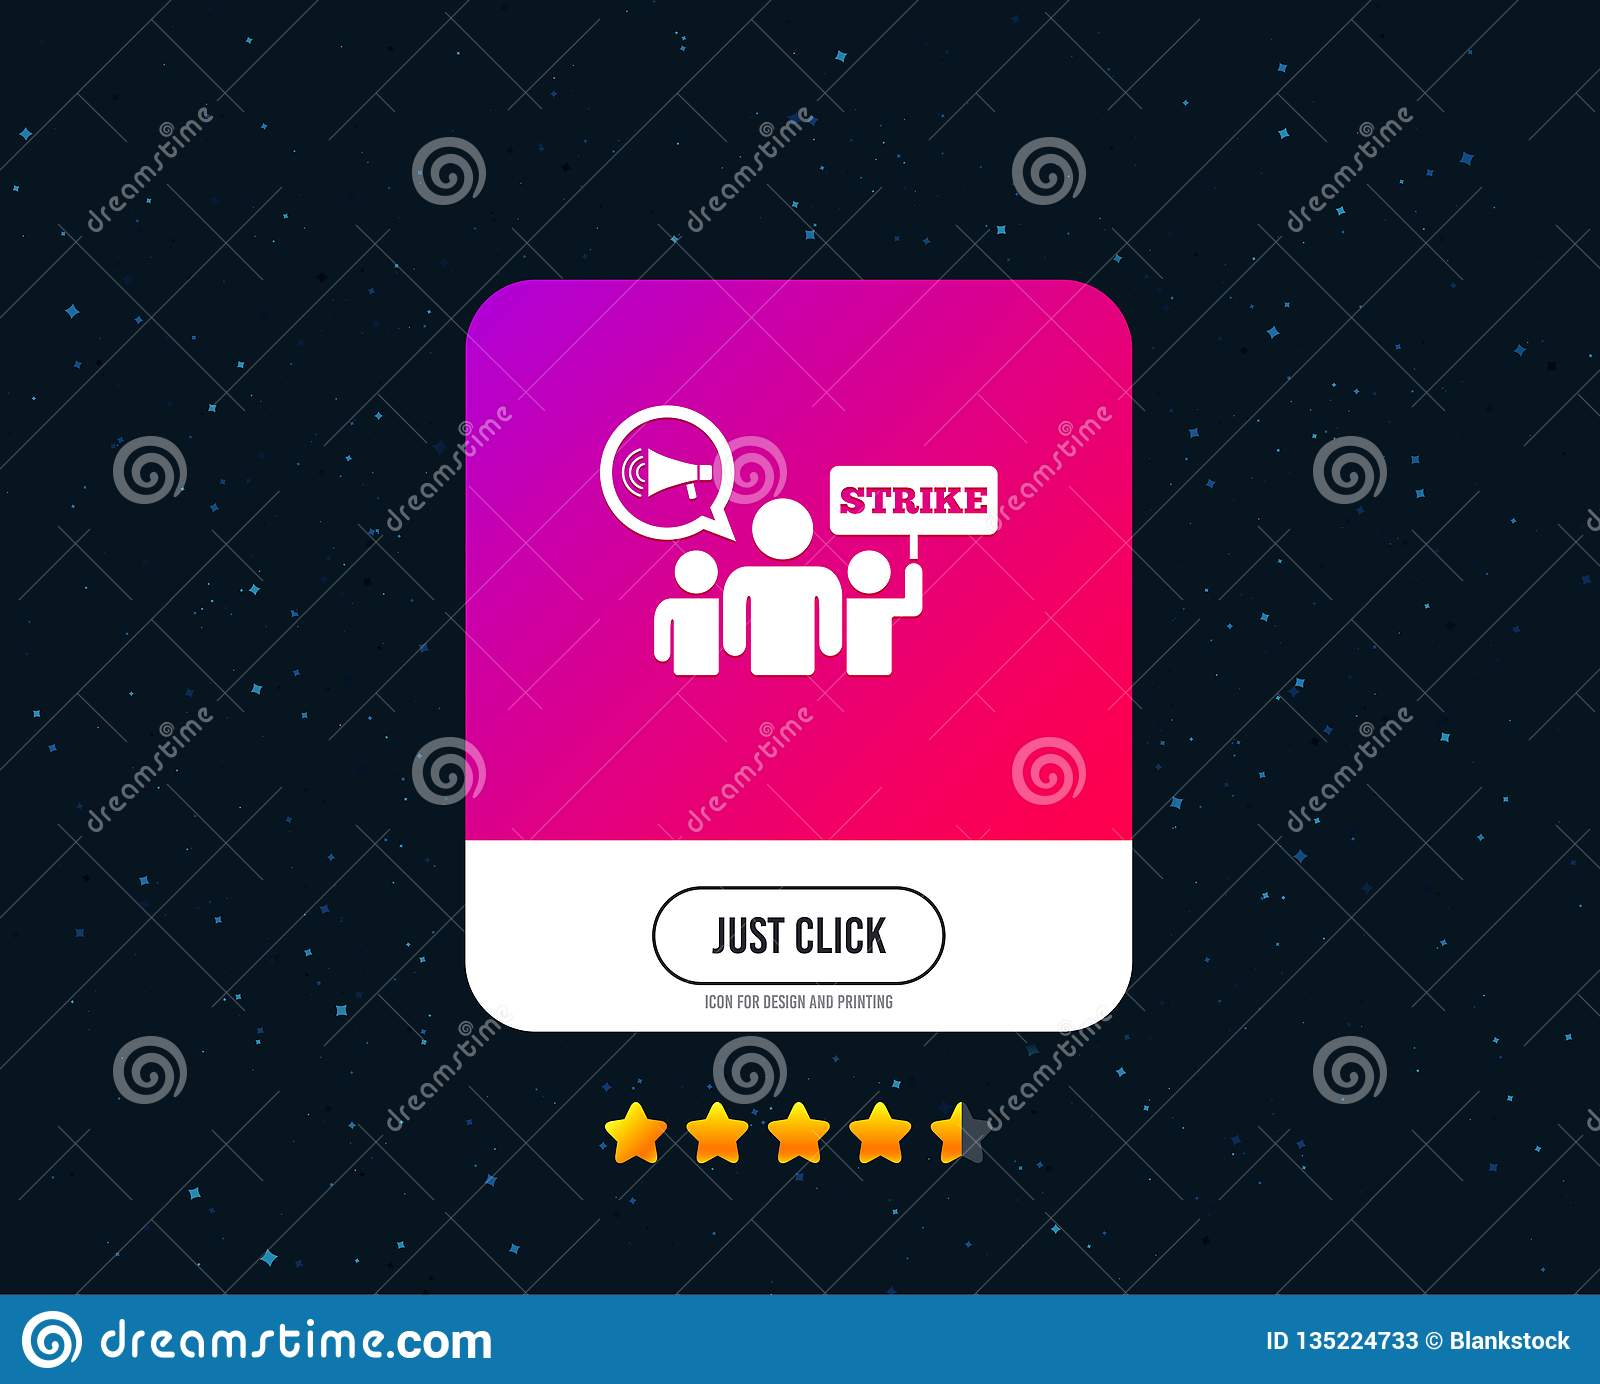 Strike sign icon. Group of people symbol. Vector